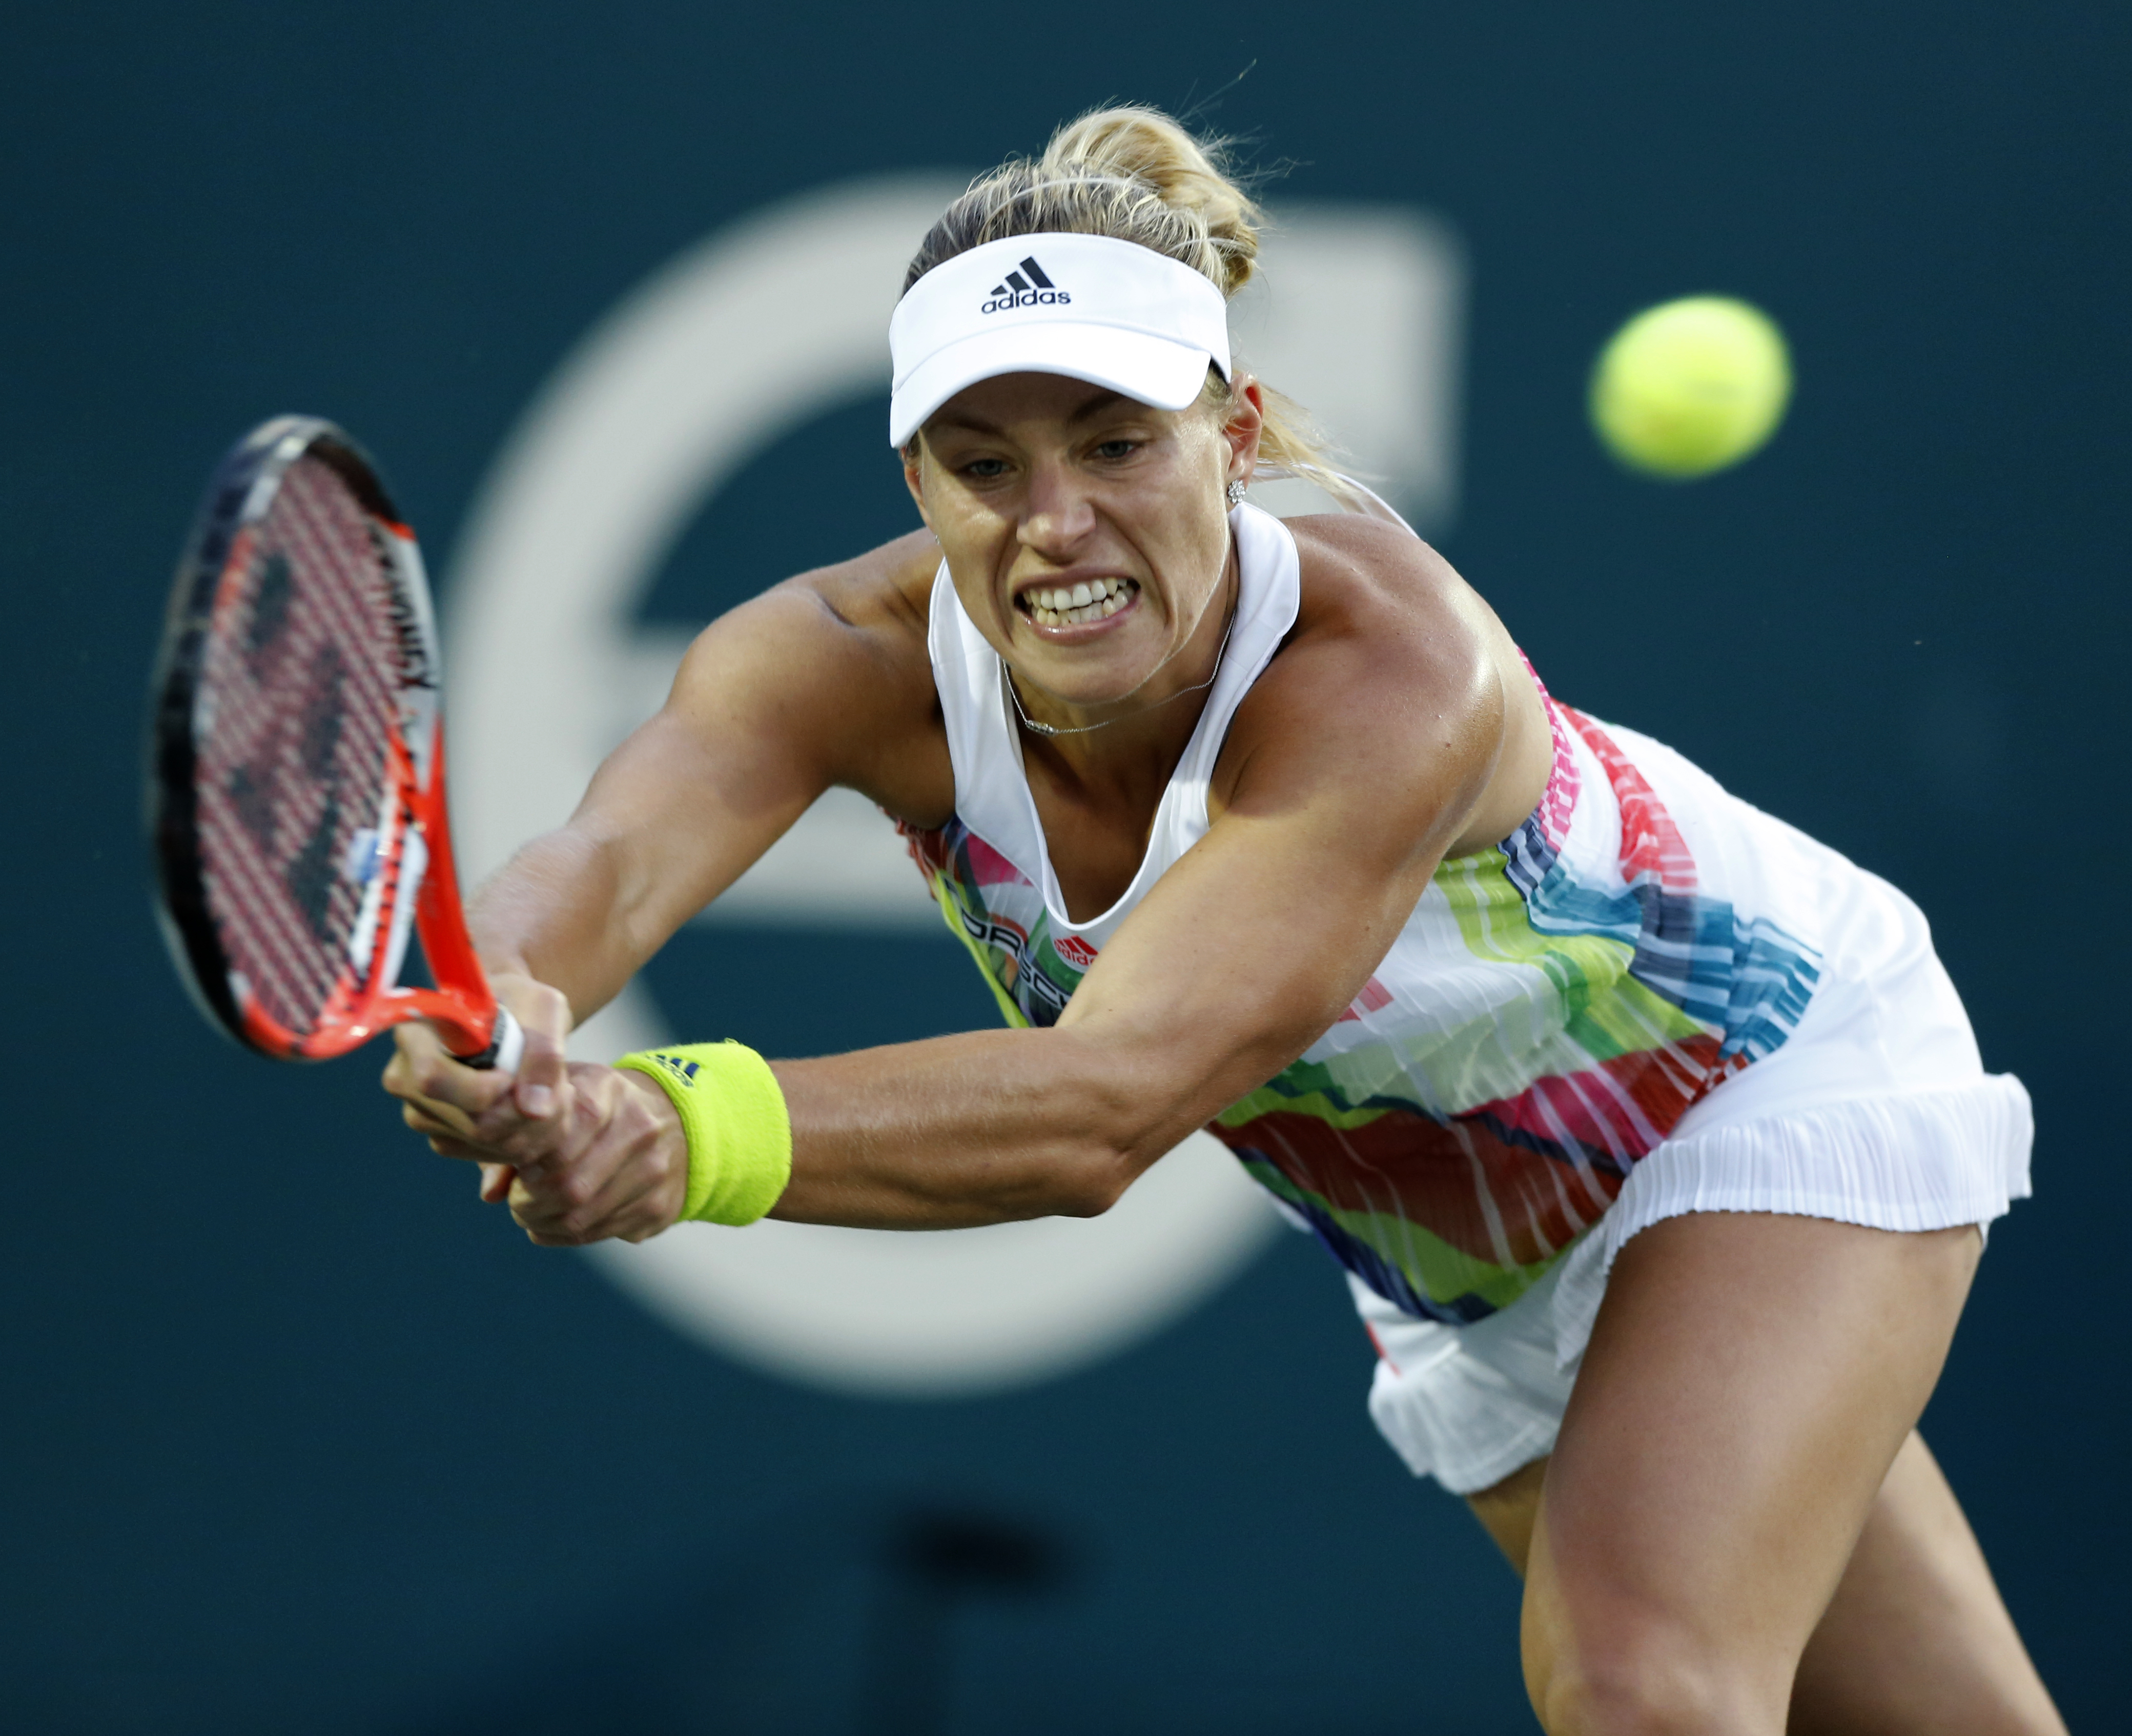 RETRANSMISSION TO CORRECT ID TO LARA ARRUABARRENA- Angelique Kerber, from Germany, returns a shot to Lara Arruabarrena, of Spain, during their tennis match at the Volvo Car Open in Charleston, S.C., Tuesday, April 5, 2016. (AP Photo/Mic Smith)